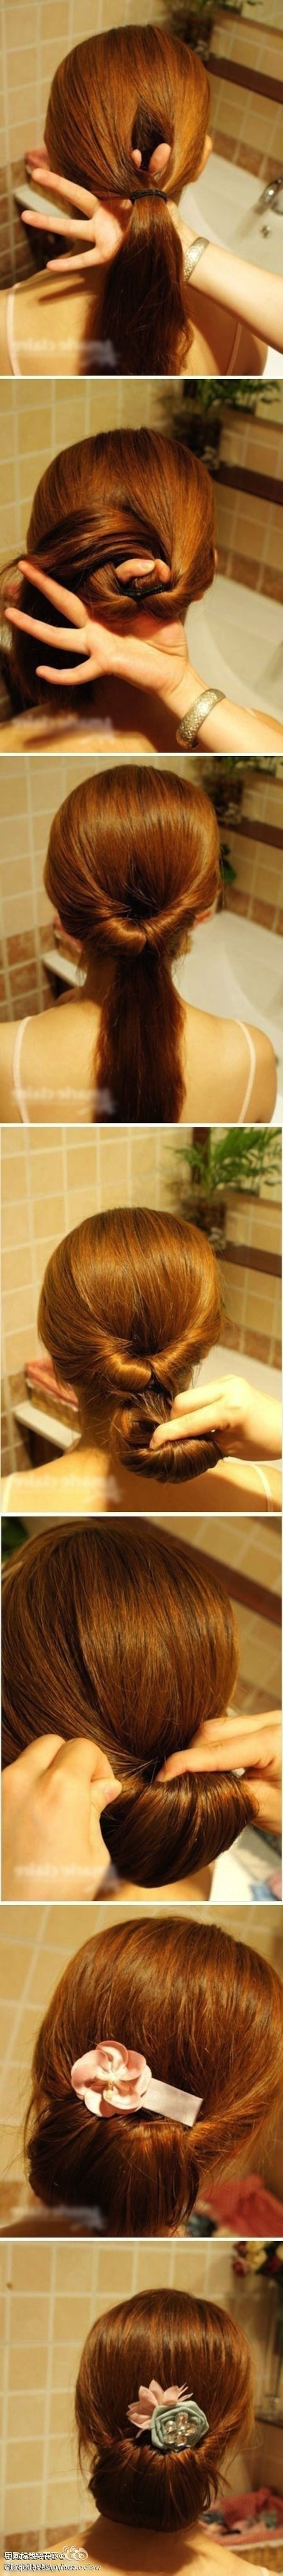 72 Best Haare Images On Pinterest | Hairstyle Ideas, Coiffure Facile Pertaining To Quick Easy Updos For Long Thick Hair (View 4 of 15)